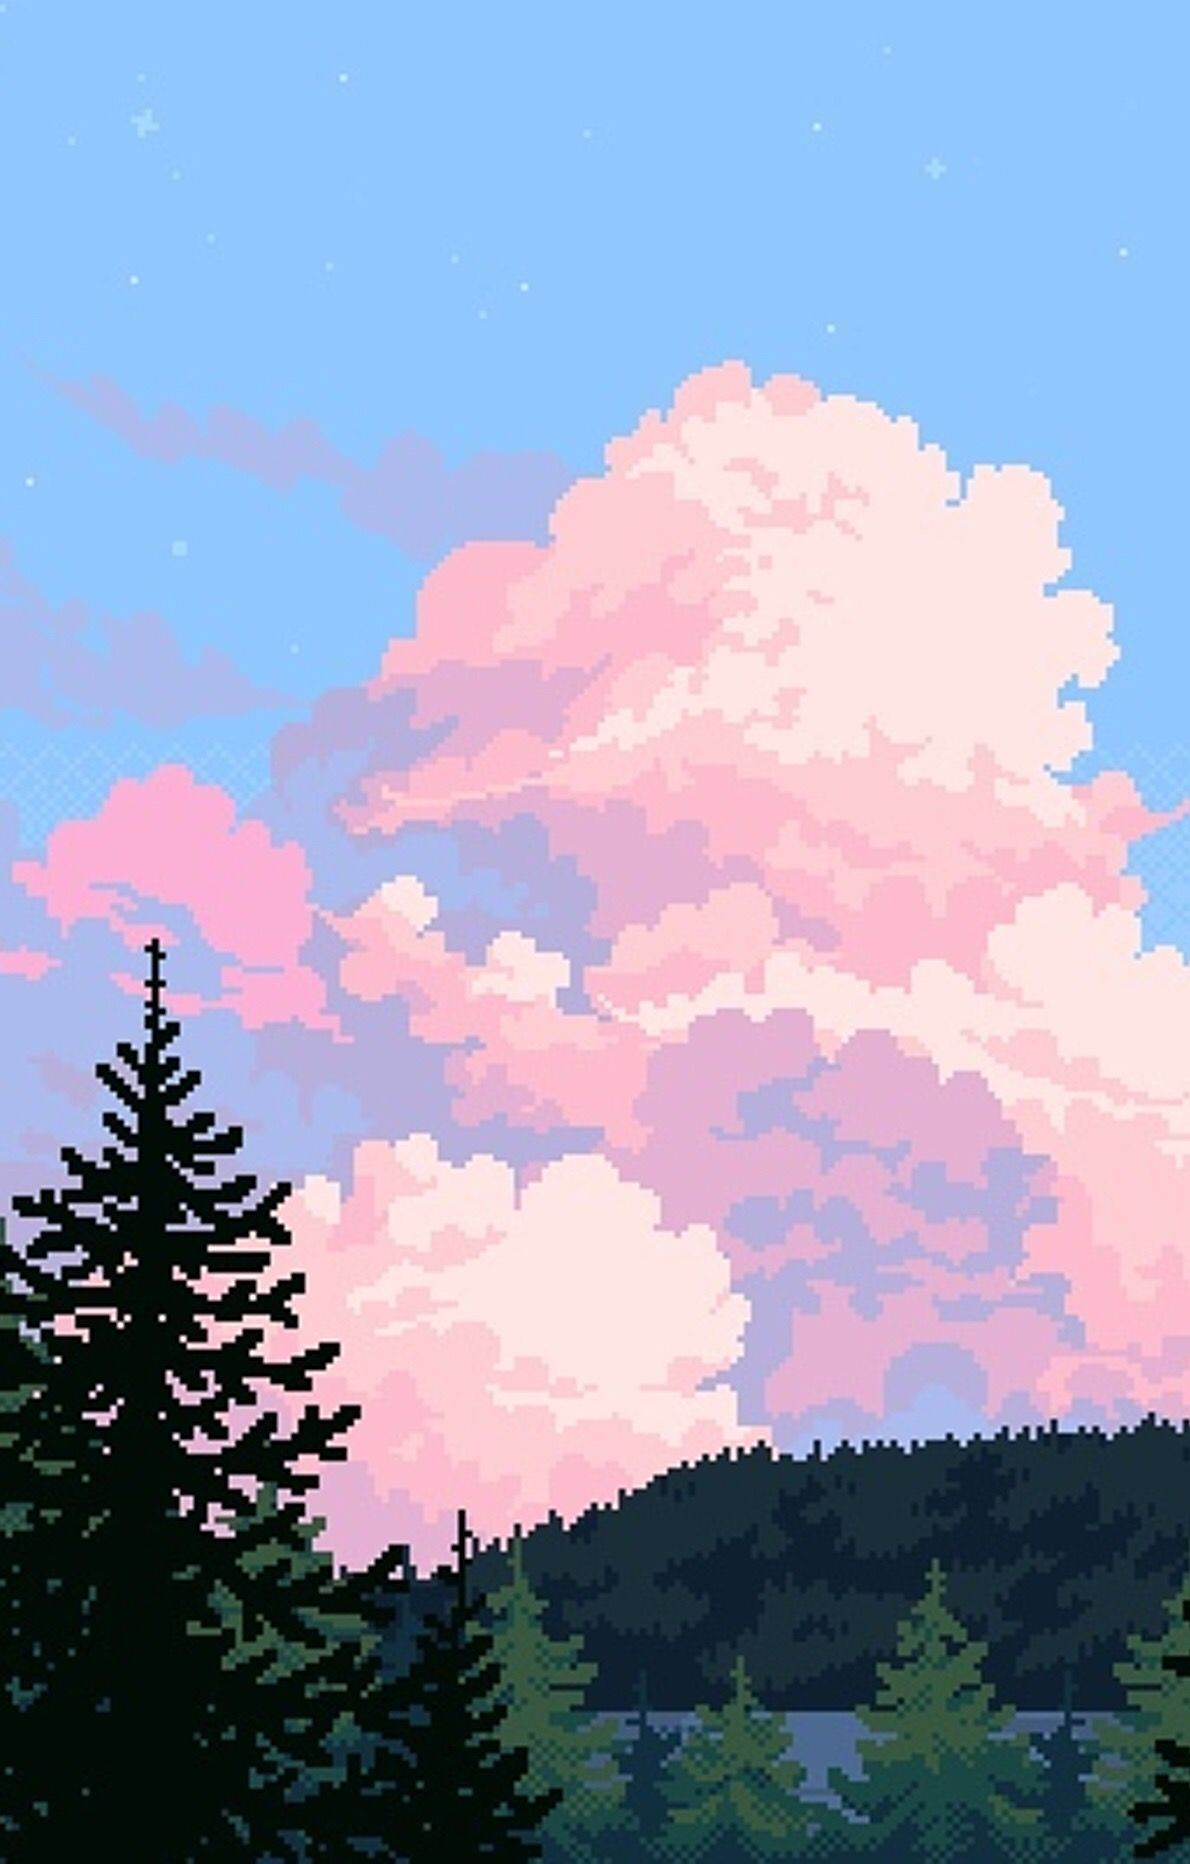 Pin By Ran Kim On A R T Pixel Art Background Art Background Aesthetic Wallpapers